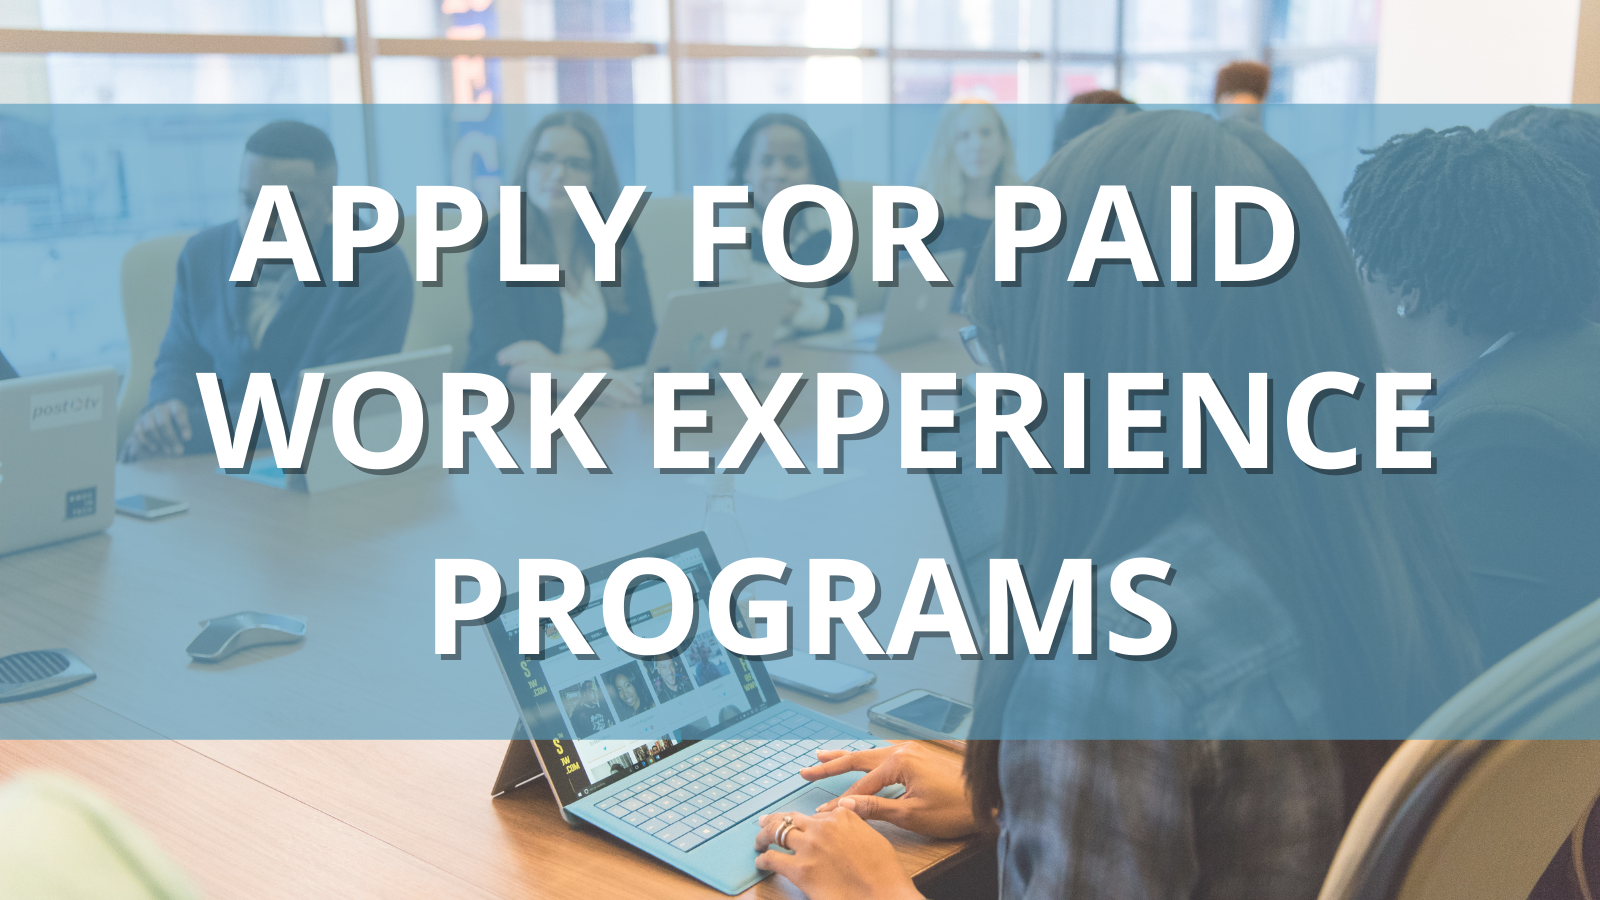 apply for paid work experience programs